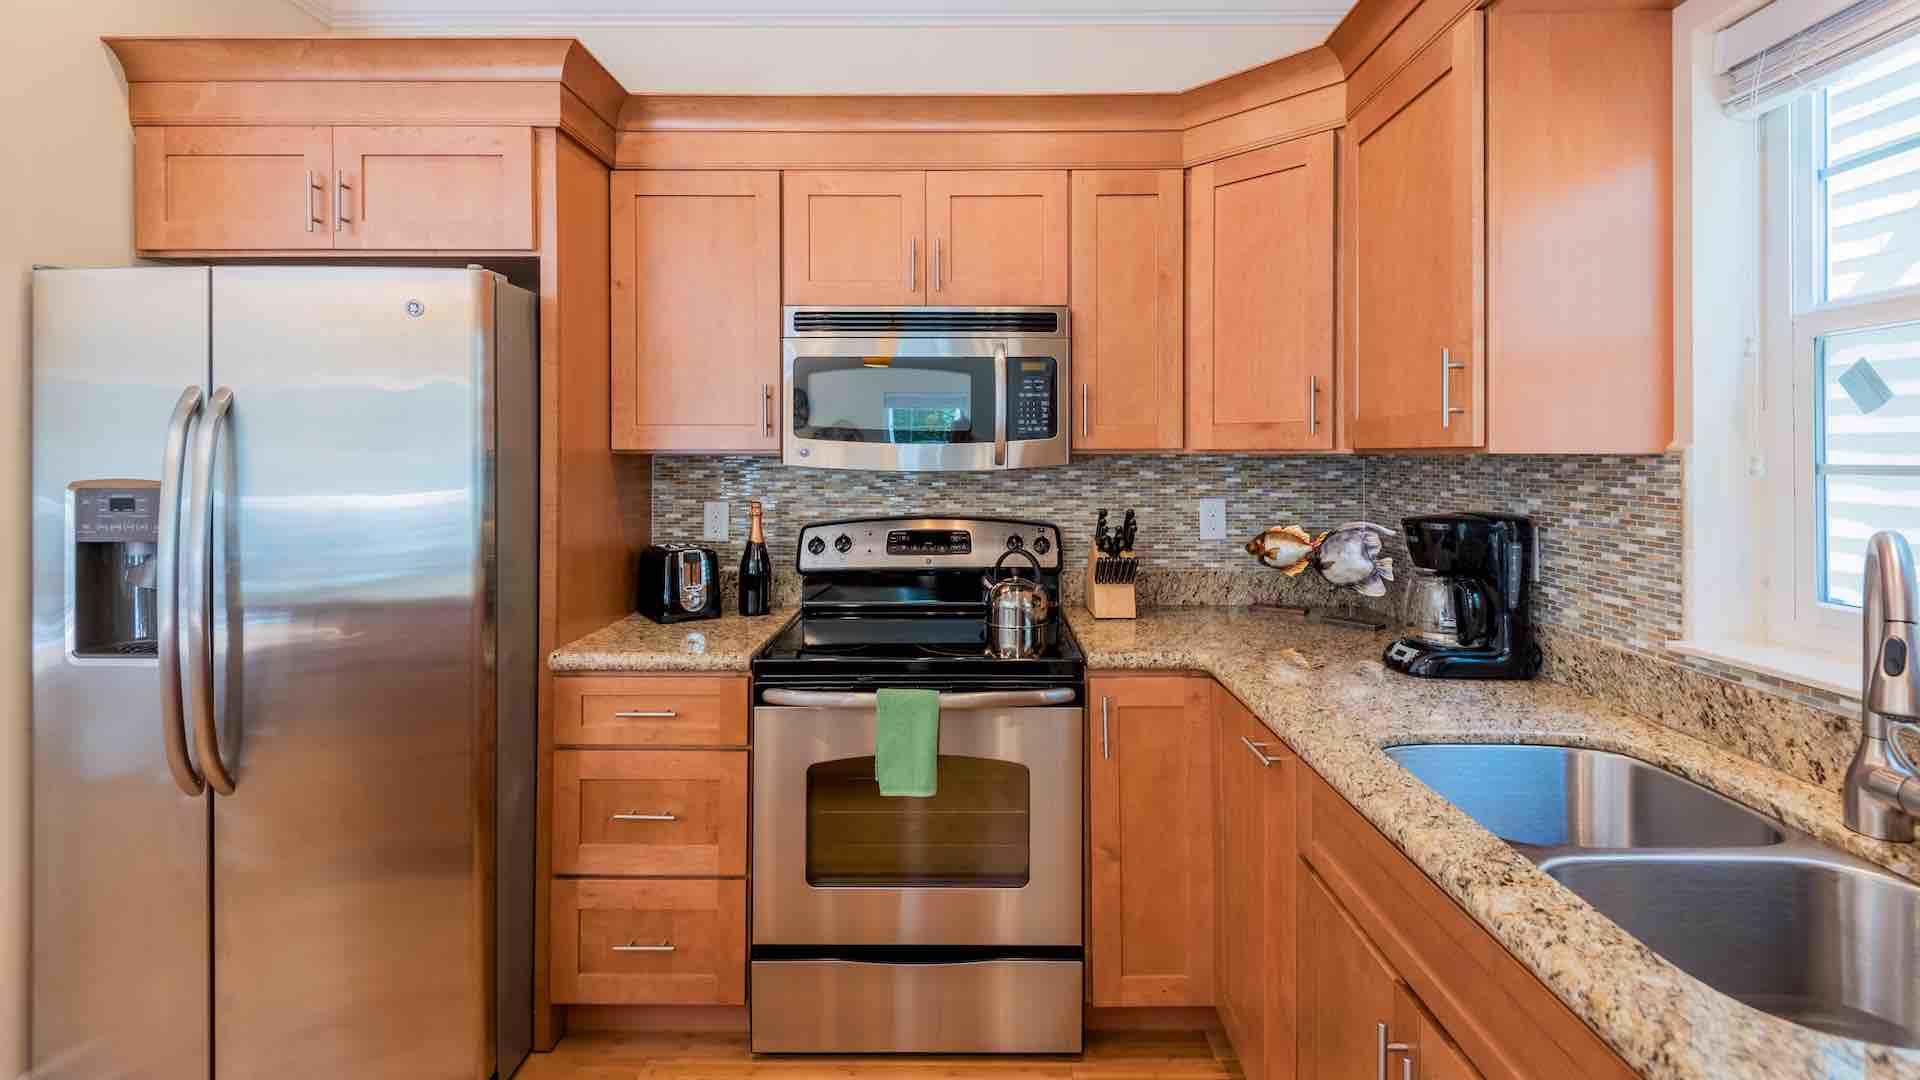 The kitchen has plenty of counter space & comes completely equipped...